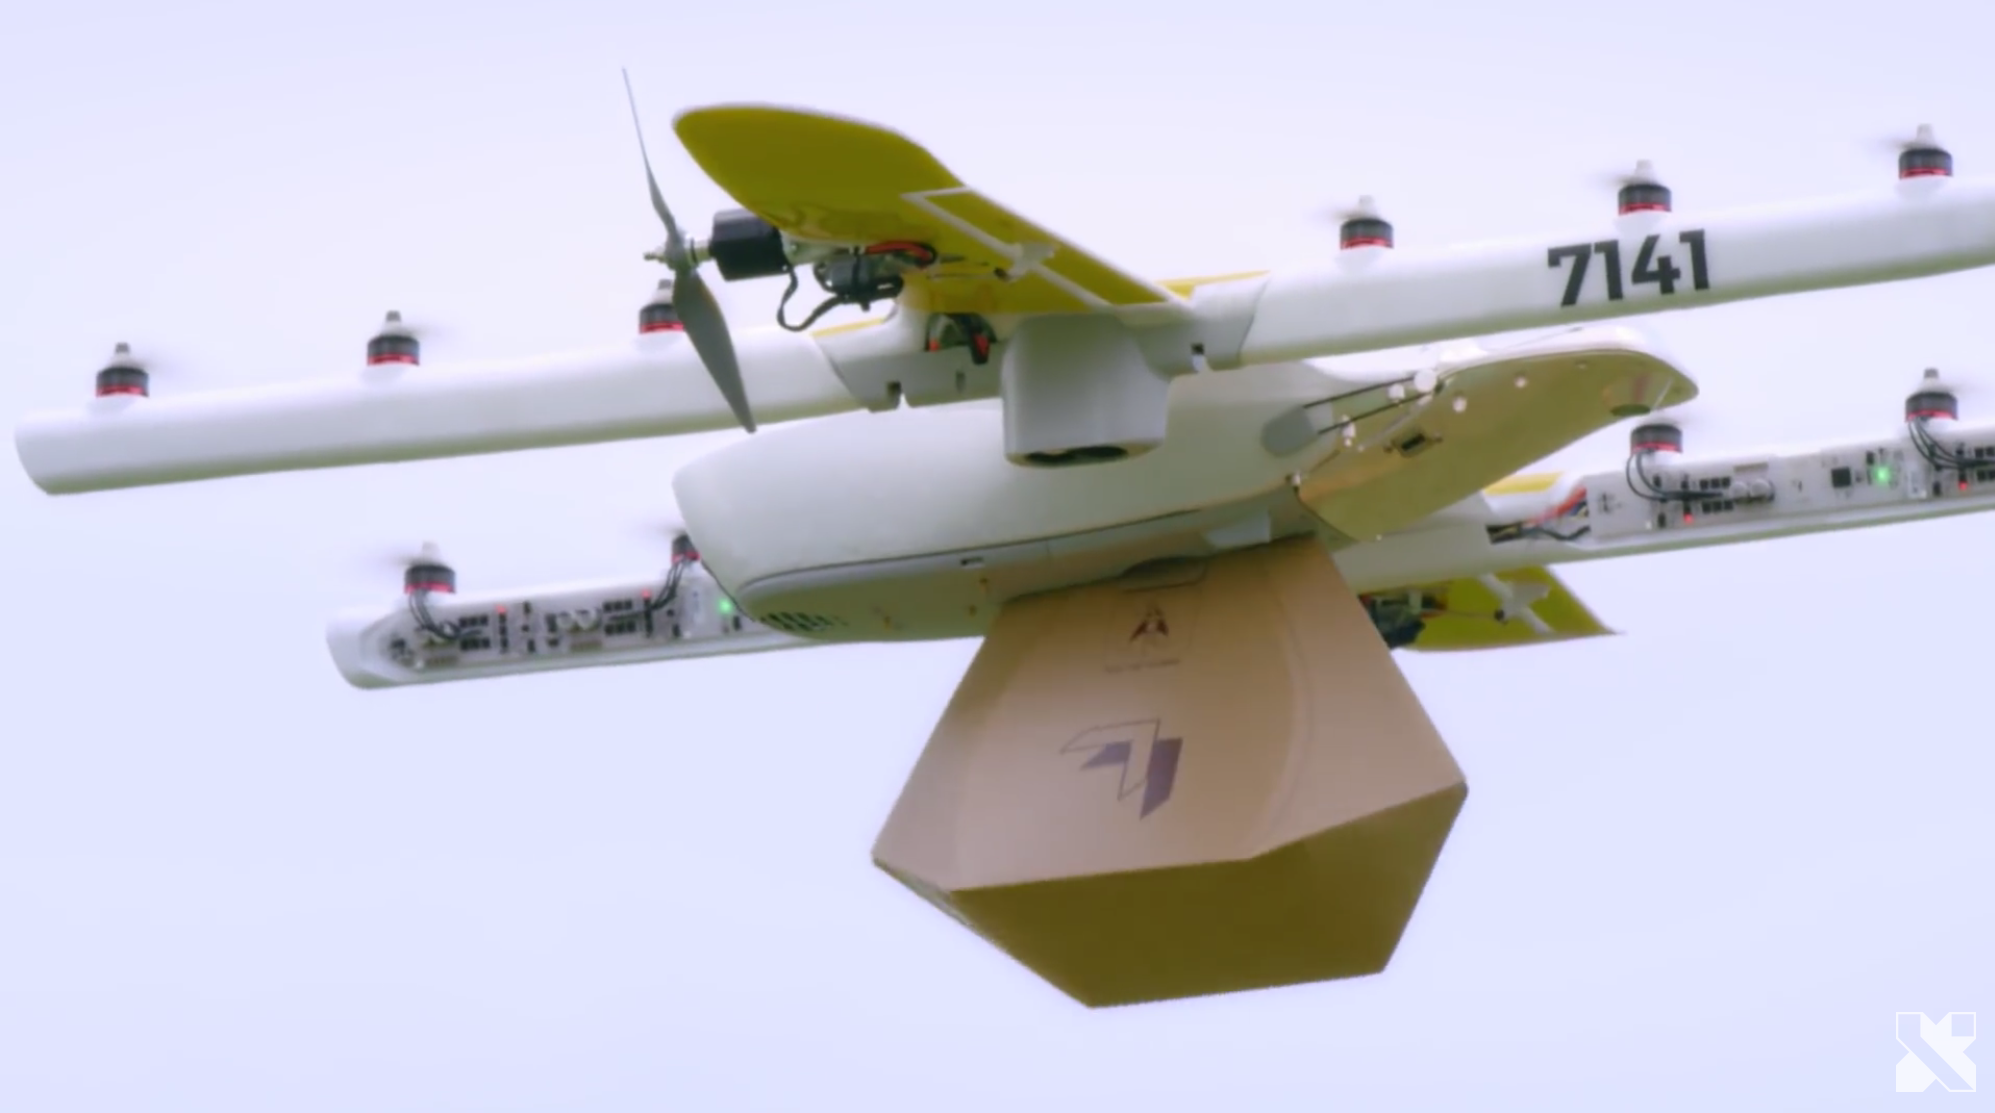 A Wing drone prototype is shown carrying a payload. Credit: Alphabet